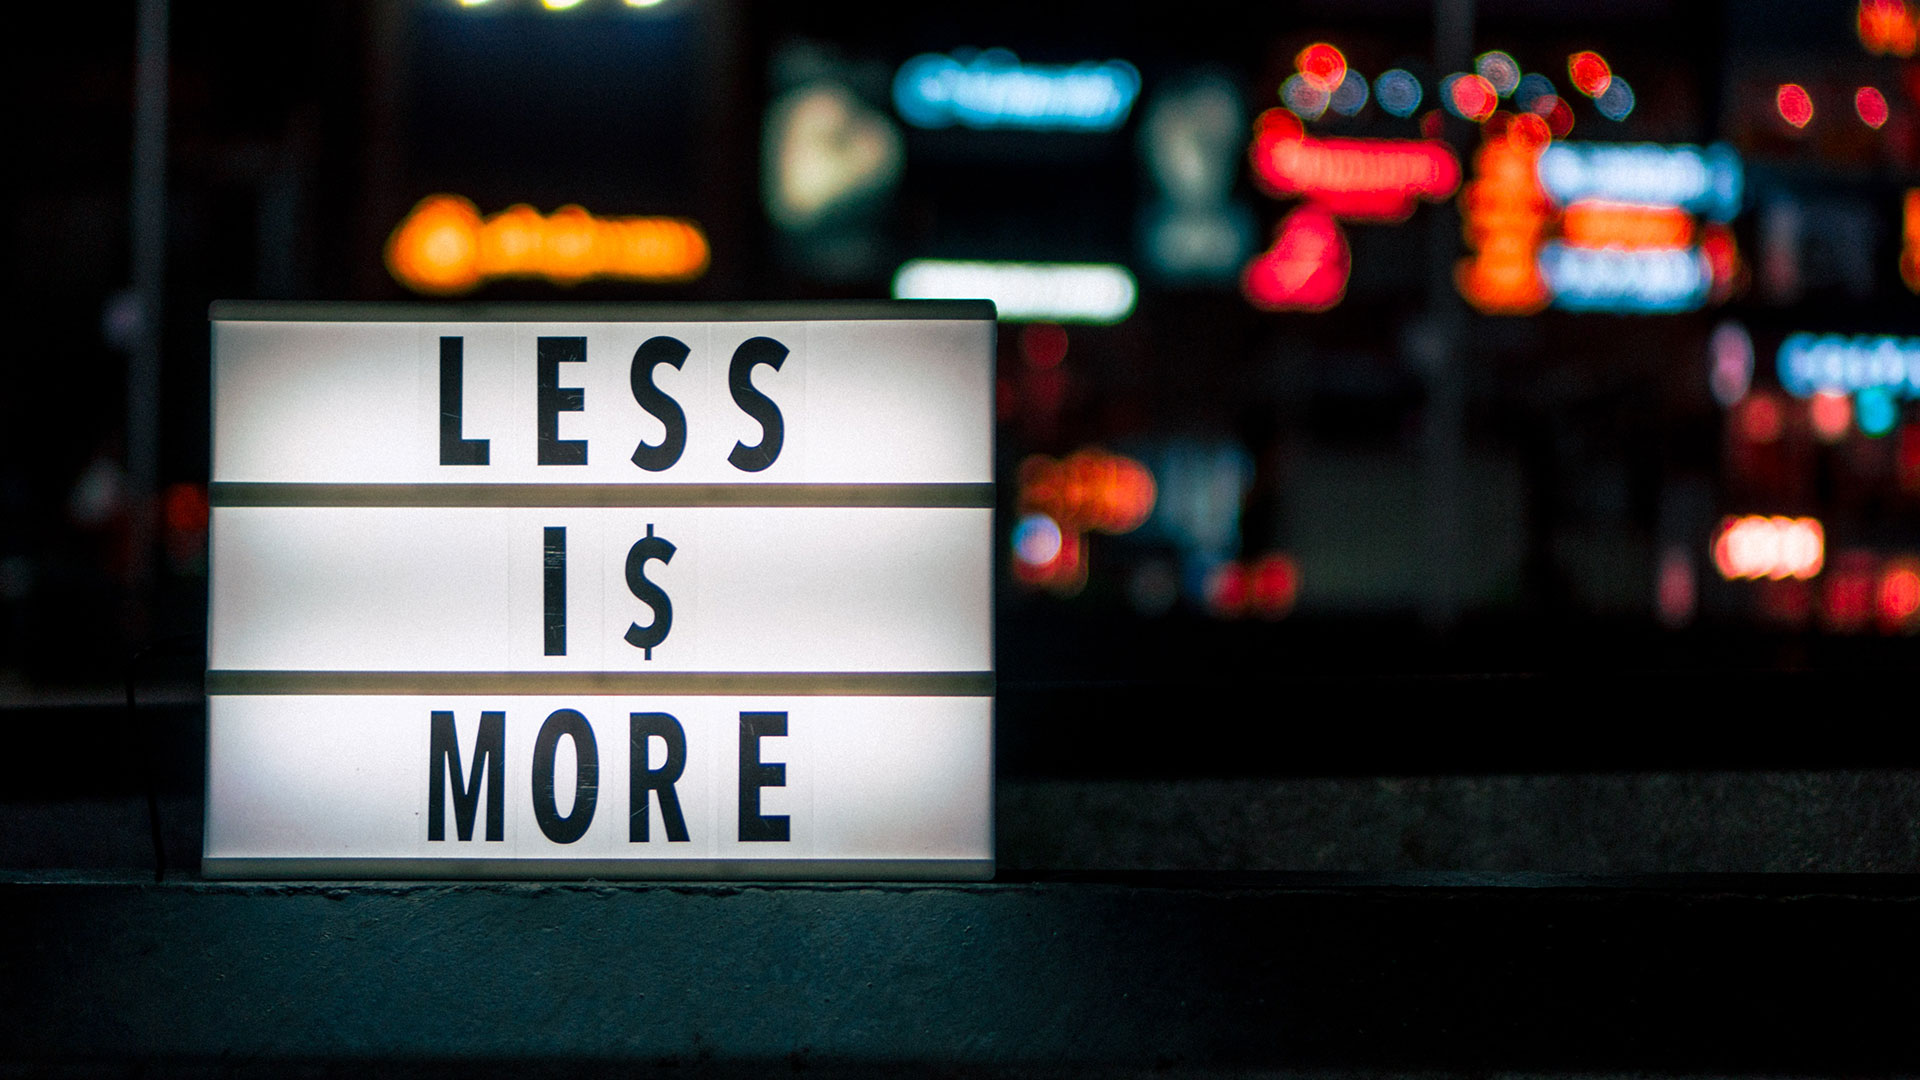 Less-is-_more